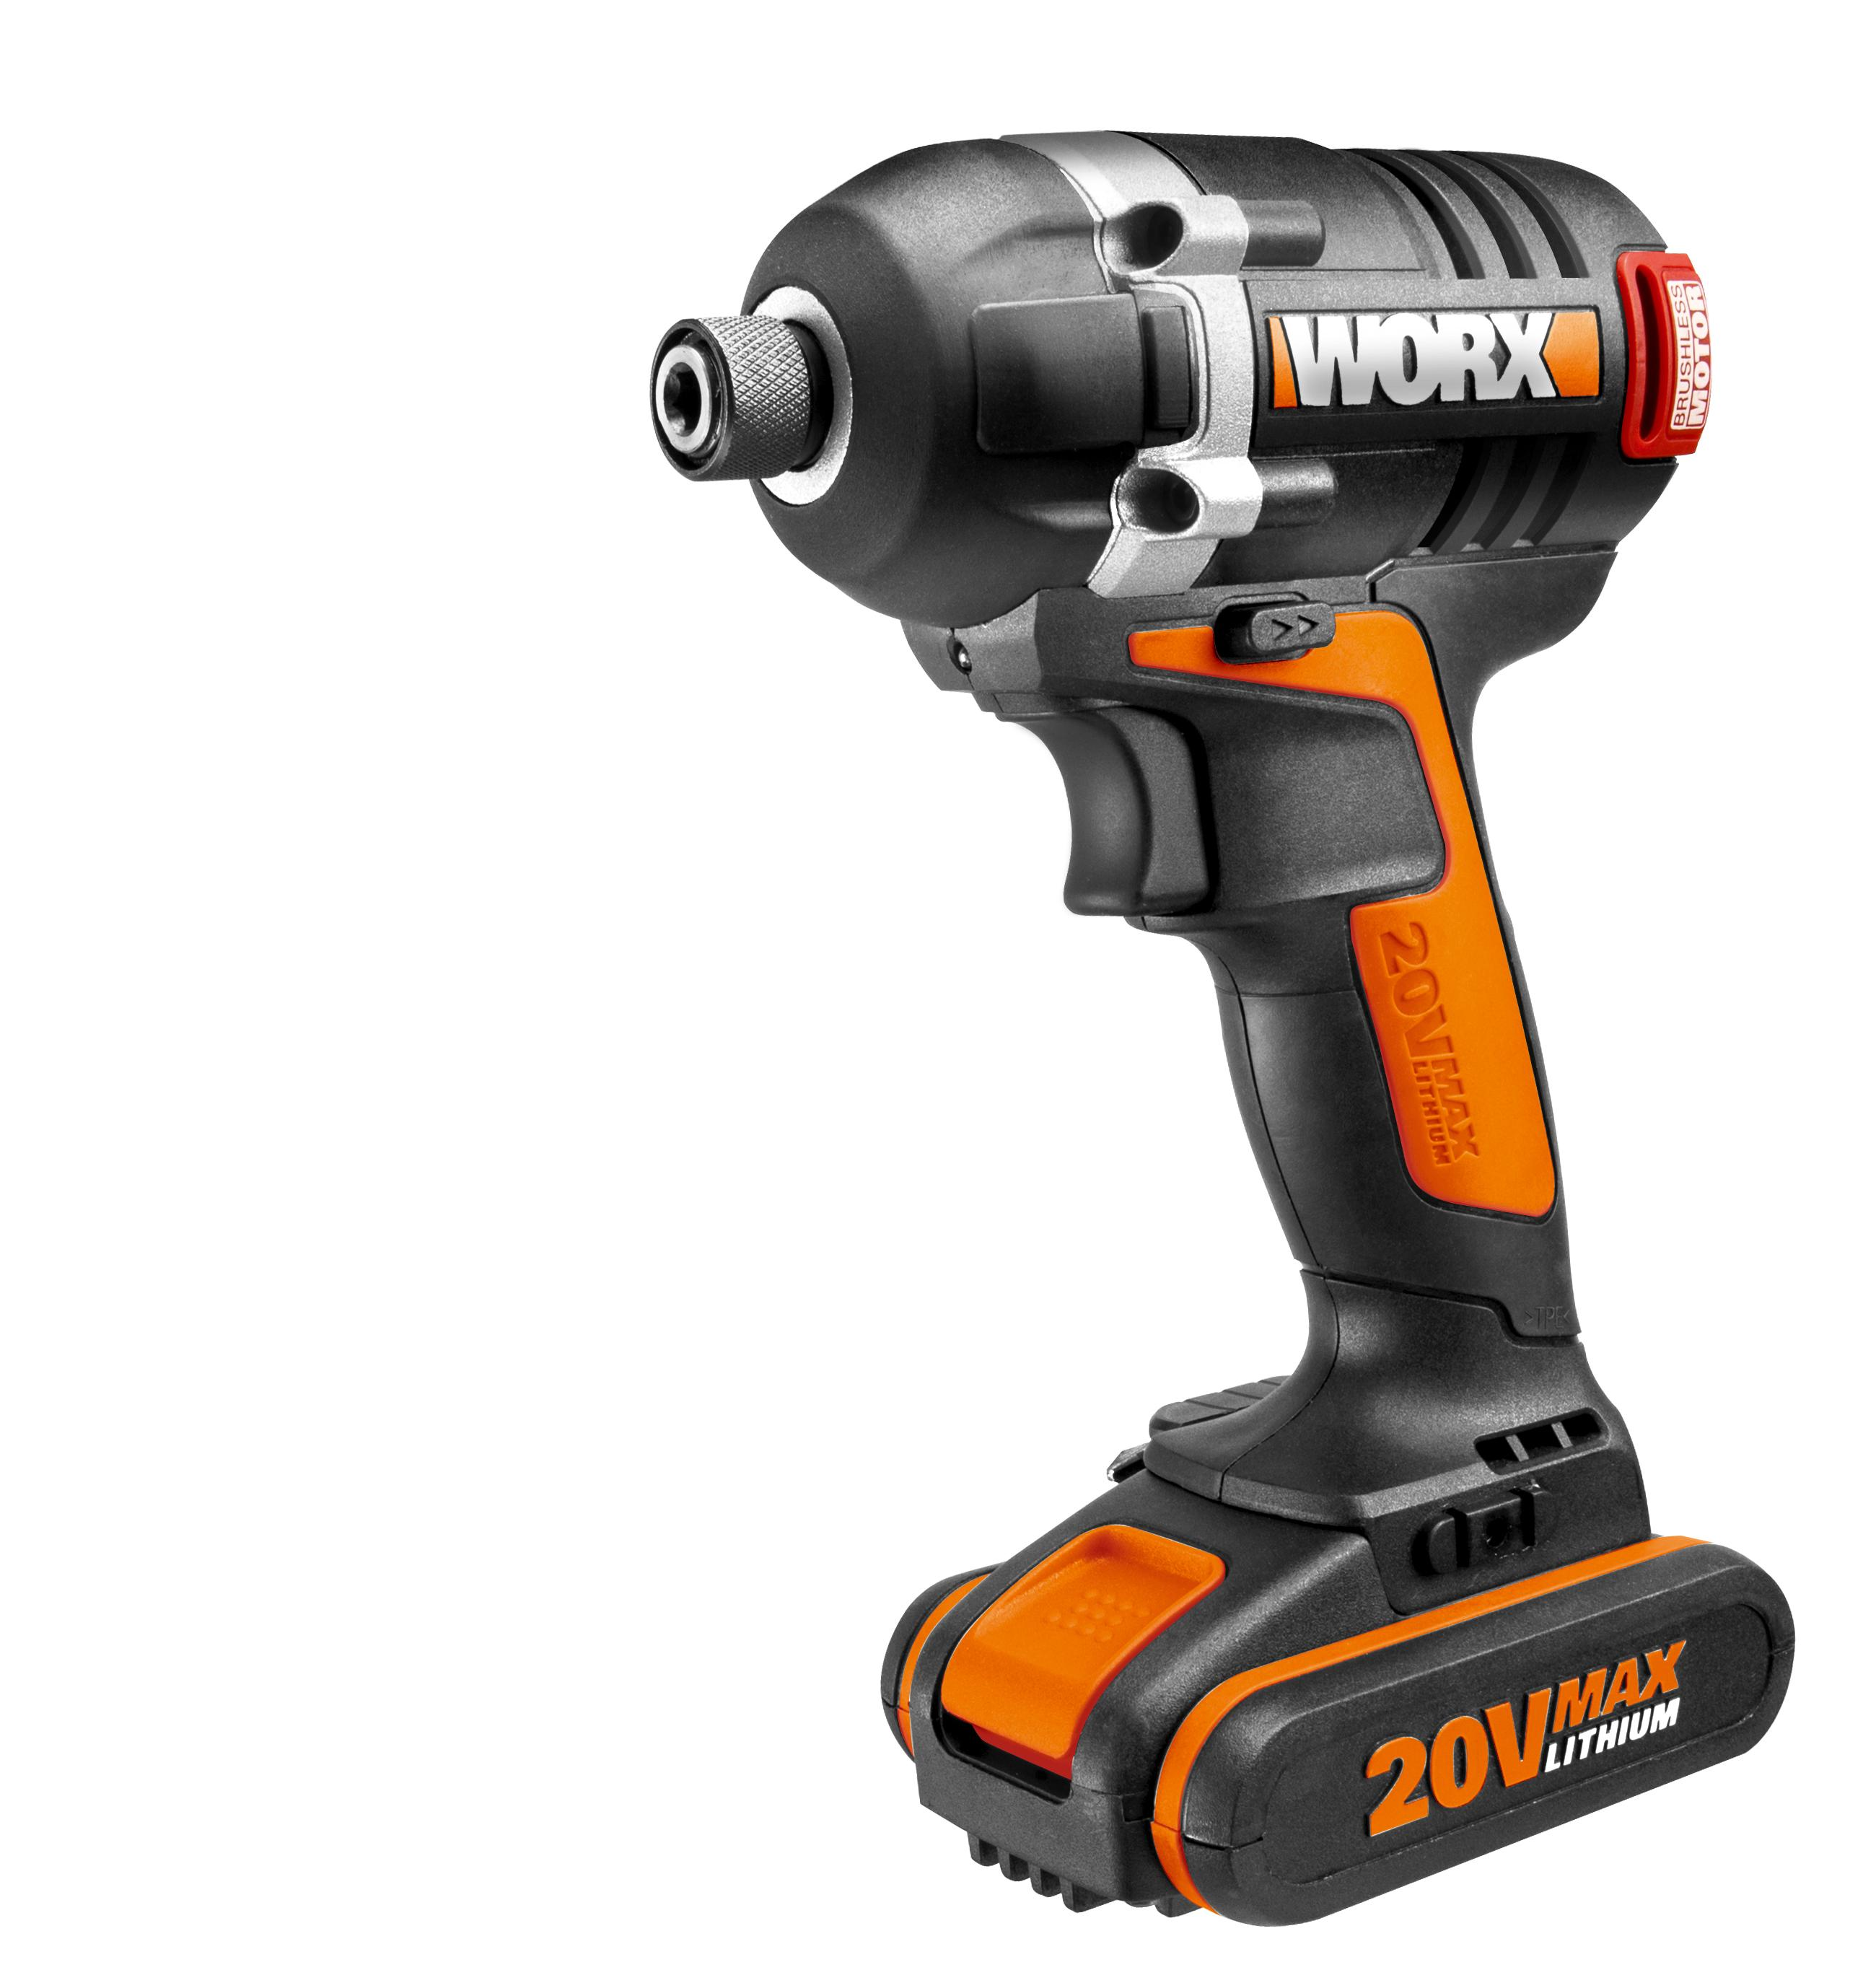 worx wx918 18v 20v max cordless brushless motor impact driver and hammer drill. Black Bedroom Furniture Sets. Home Design Ideas